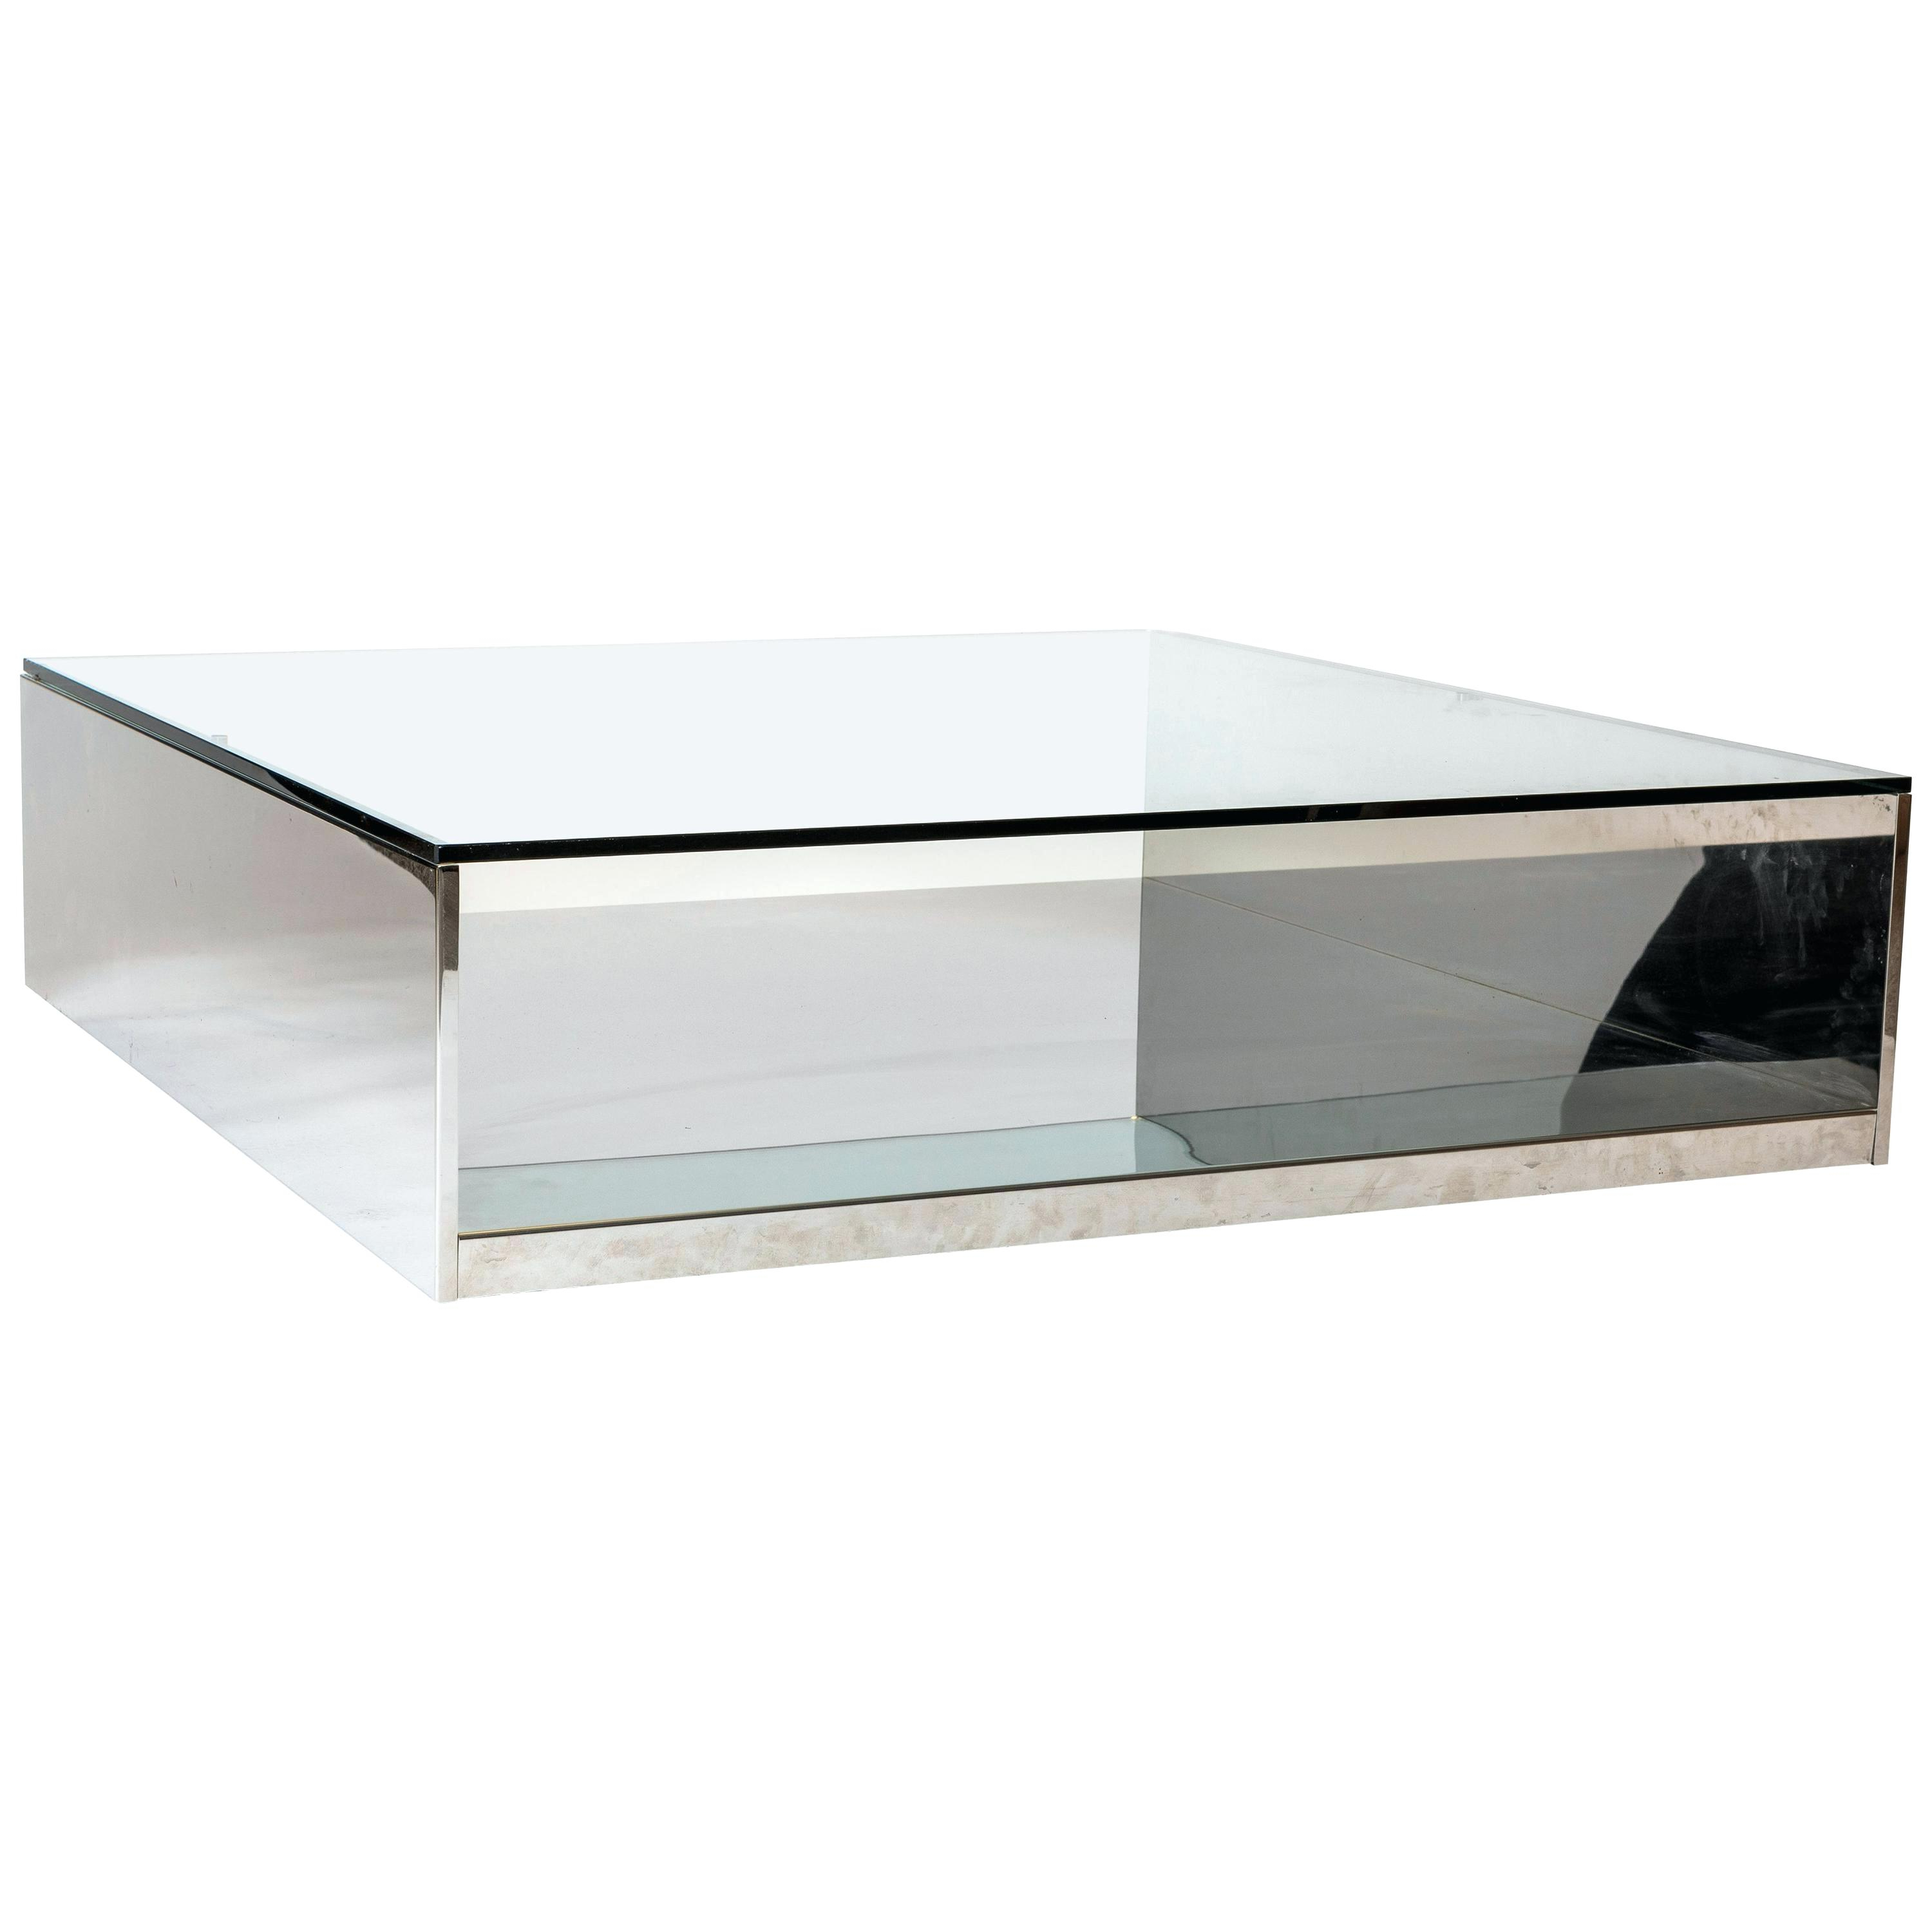 Newest Thalberg Contemporary Chrome Coffee Tables By Foa Throughout Chrome Coffee Tables – Ilianahalberg (View 11 of 20)